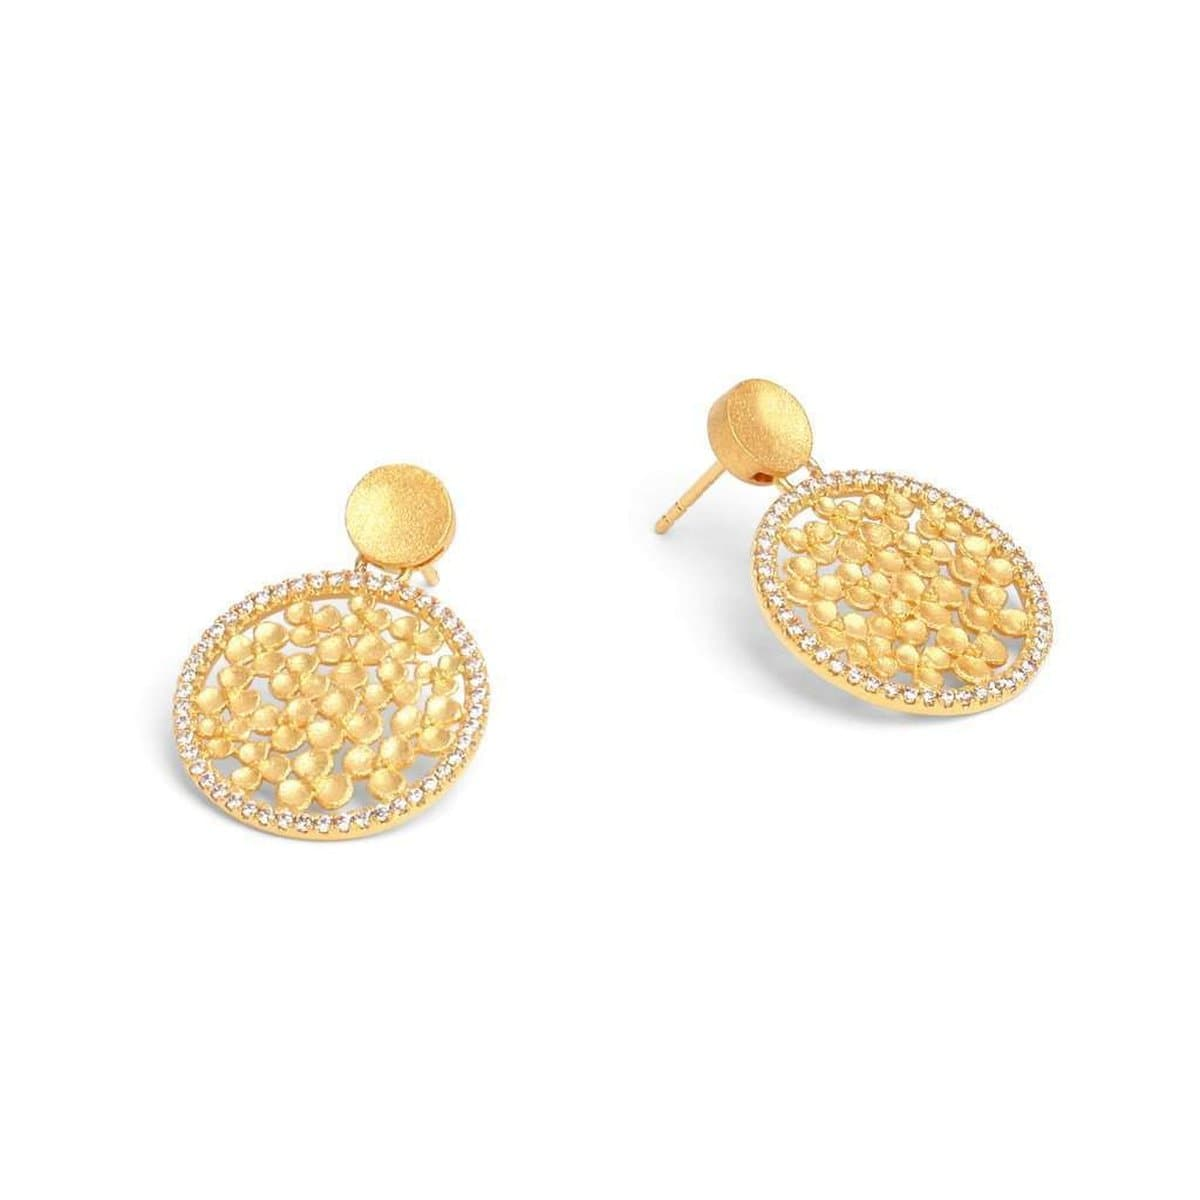 Leilana Zirconia Earrings - 15524156-Bernd Wolf-Renee Taylor Gallery